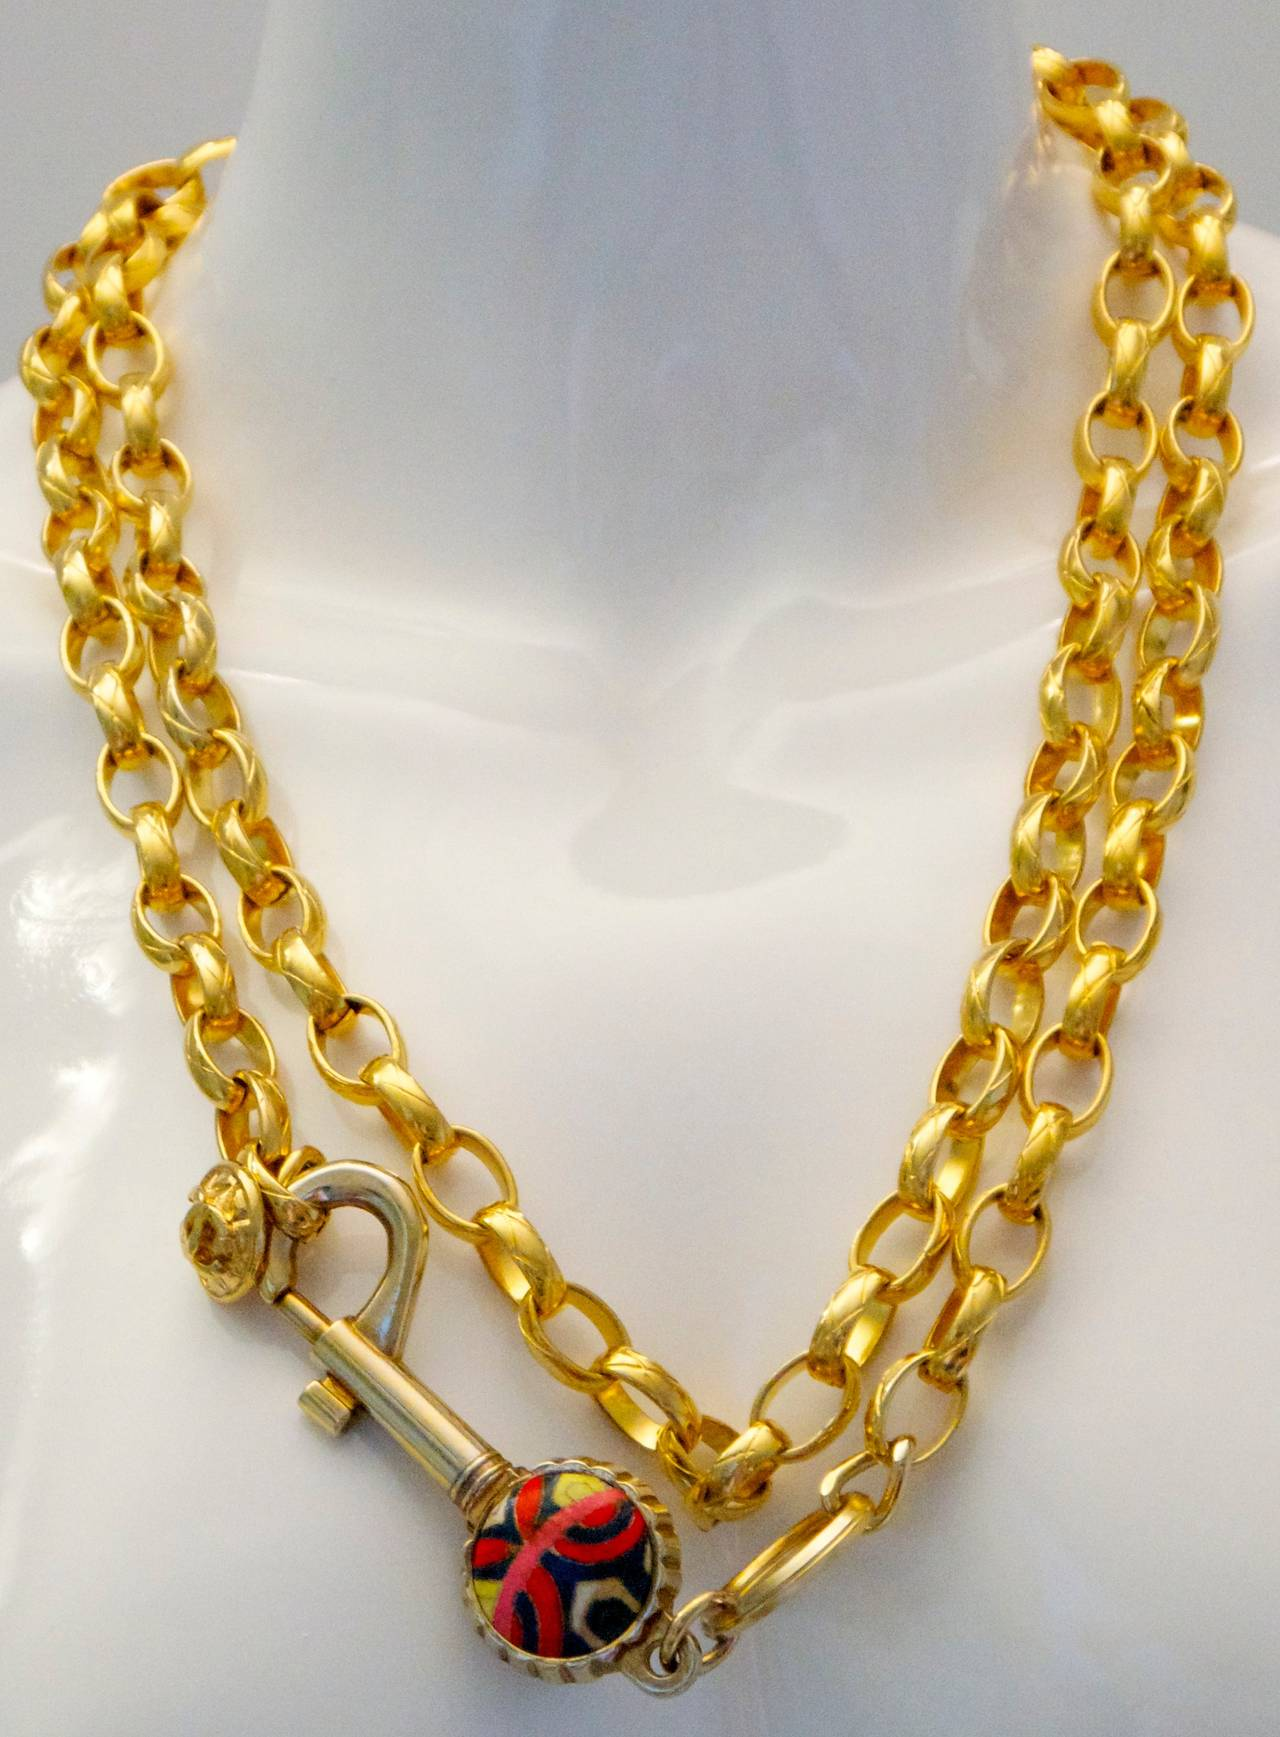 Vintage Chanel Gold Tone Belt / Necklace - Lock and Key - Rare For Sale 2